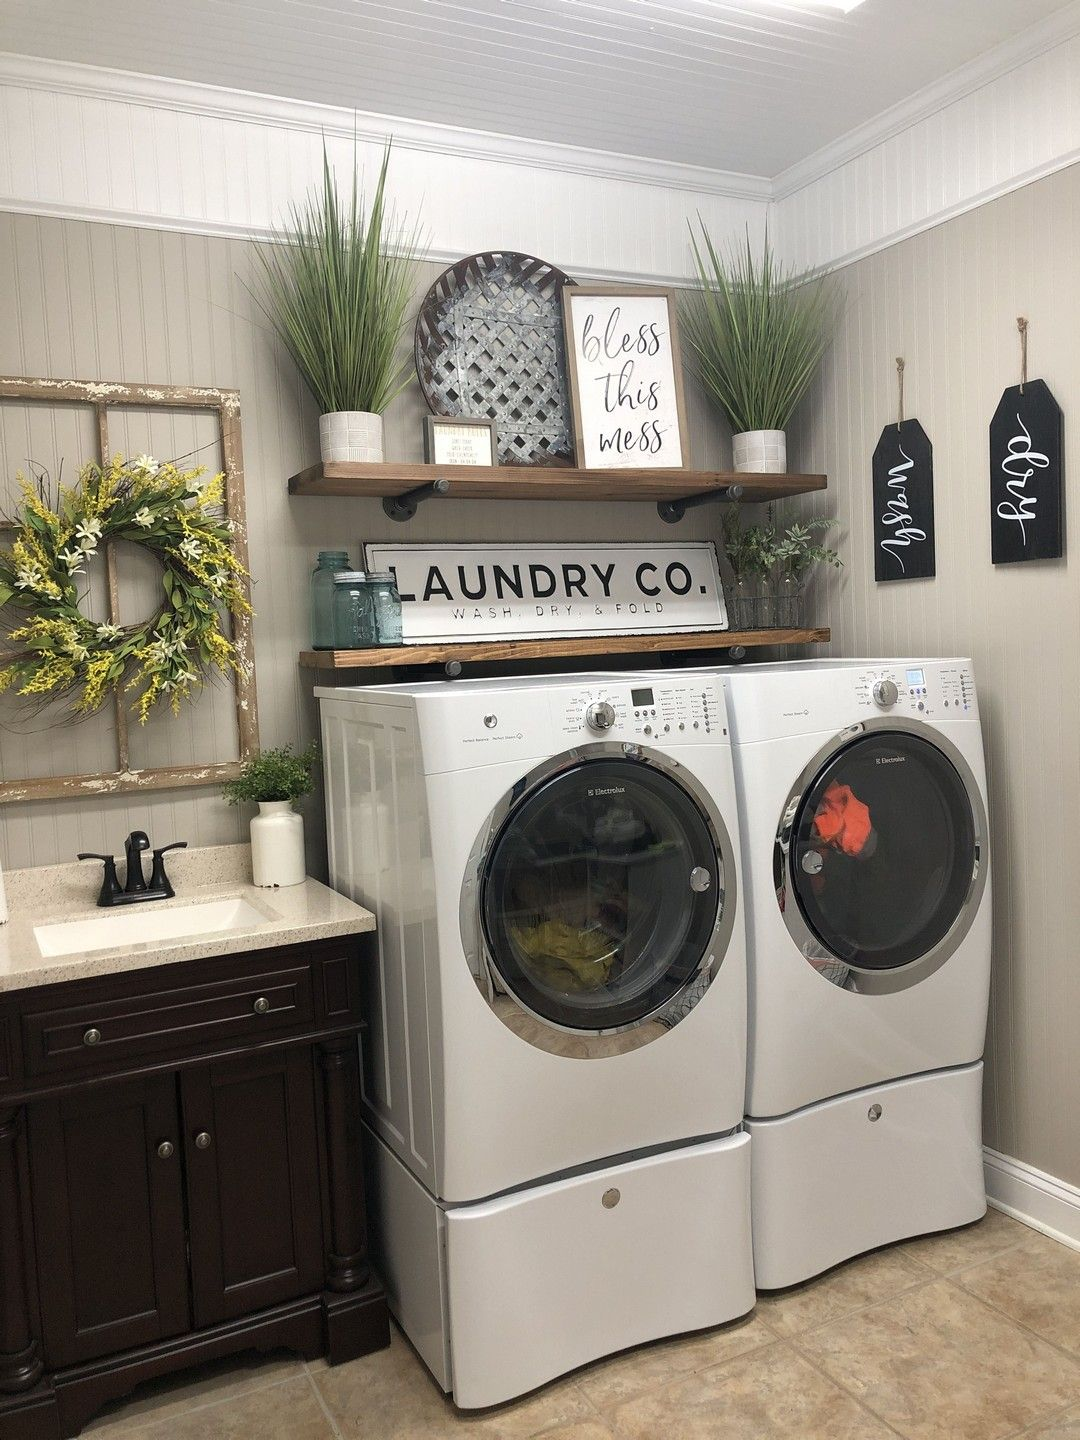 37 Smart Laundry Room Design Ideas and Tips for Functional Decorating images